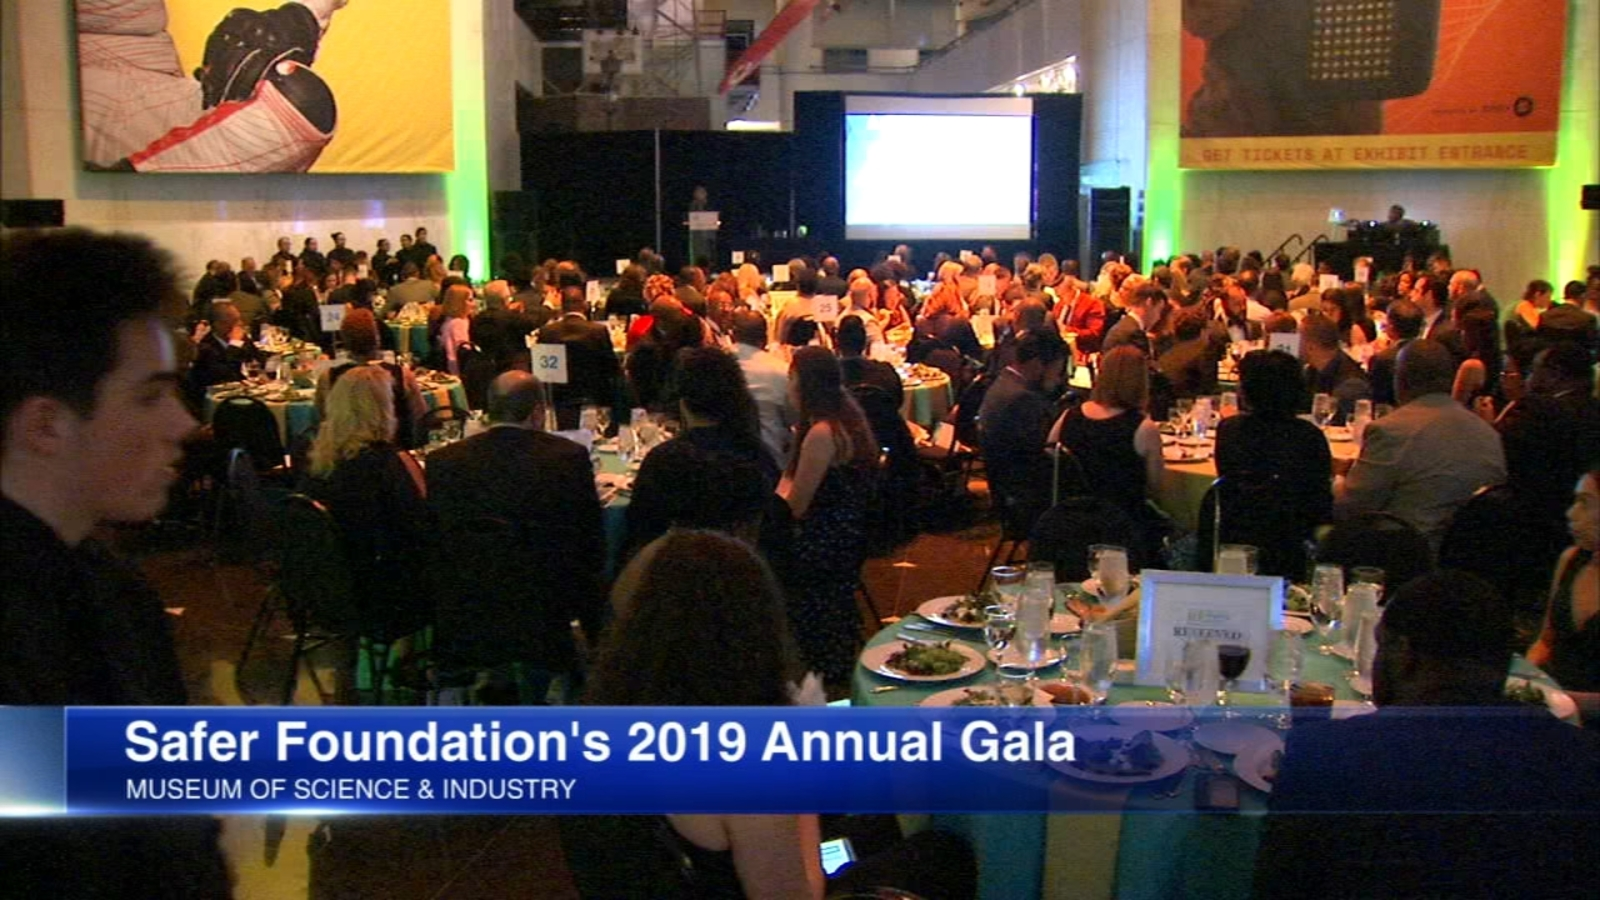 Safer Foundation holds annual gala